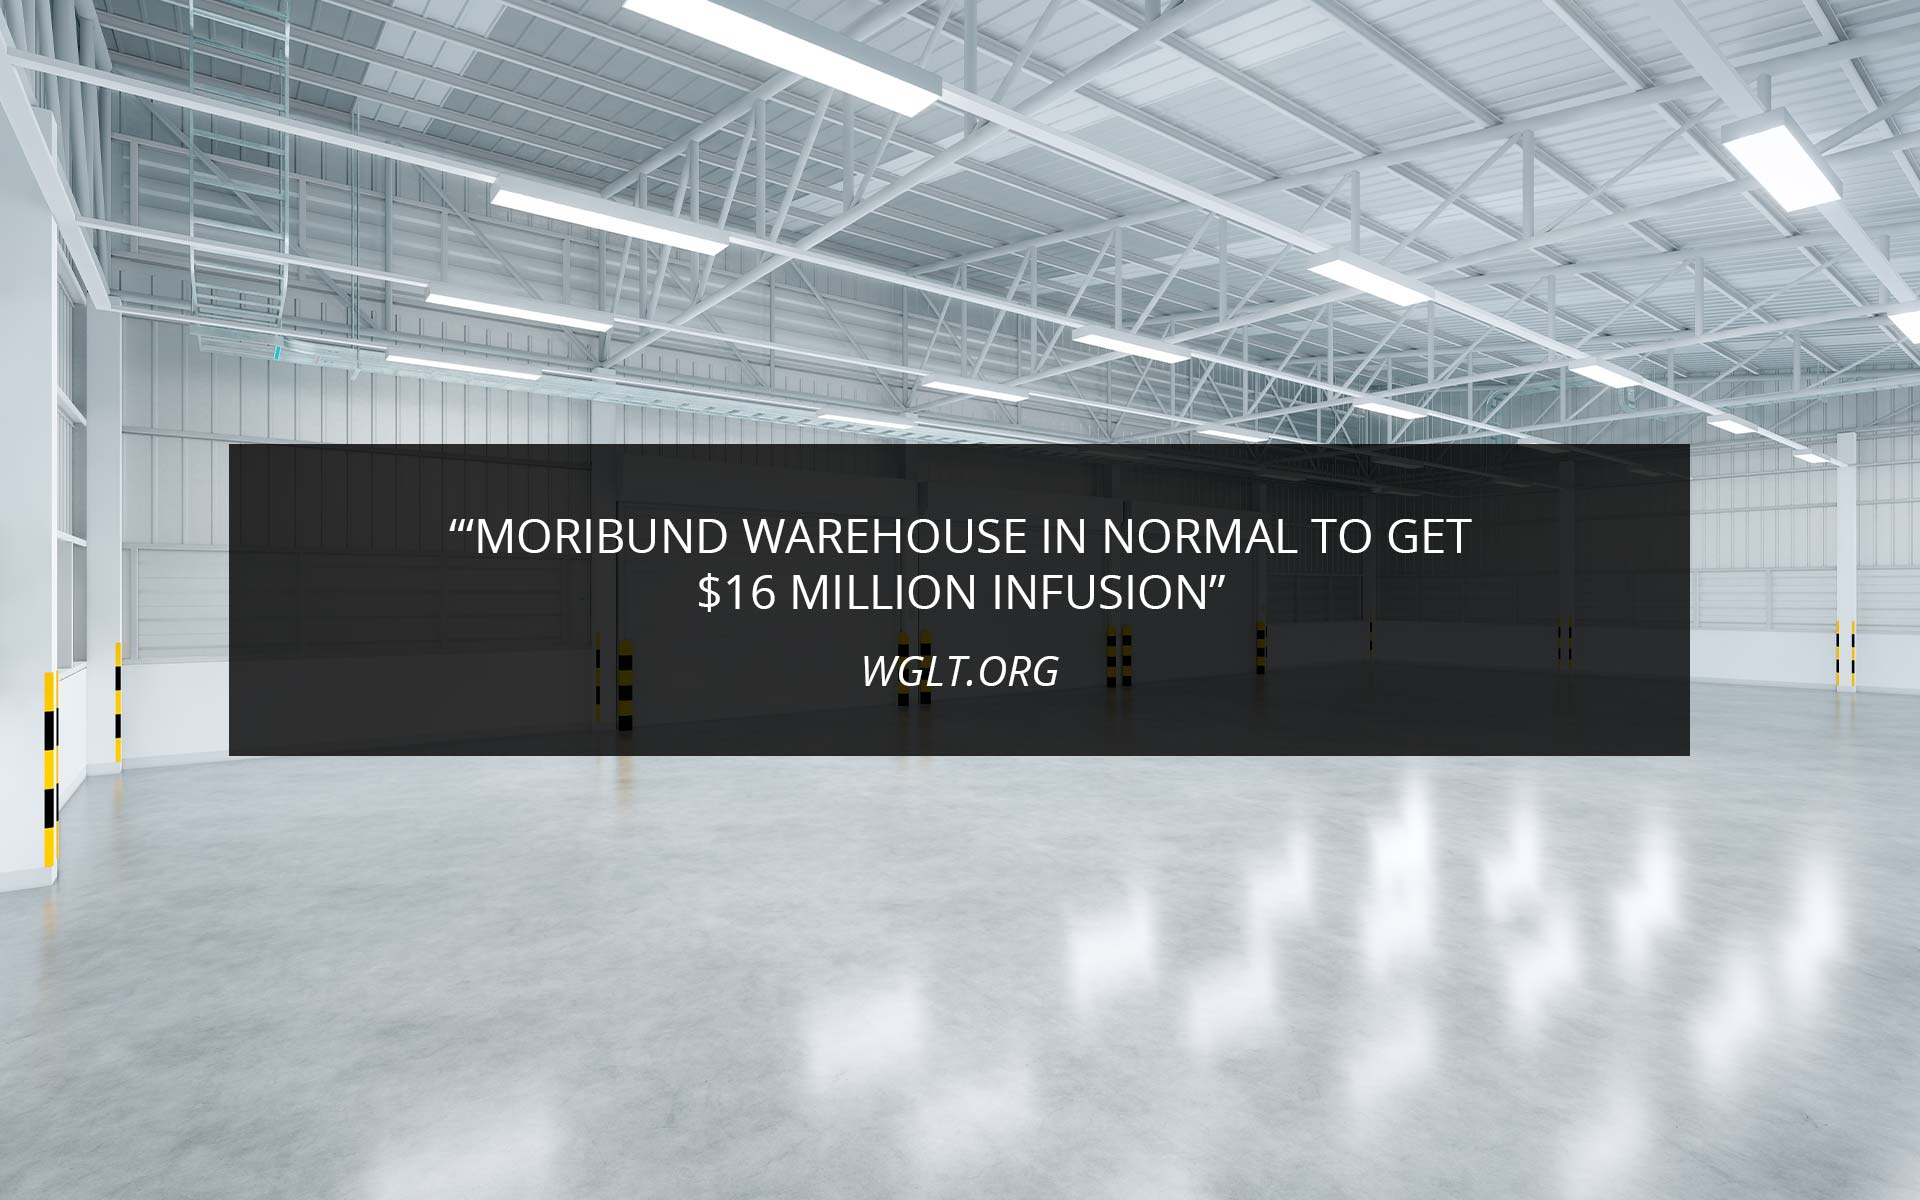 Moribund Warehouse In Normal To Get $16 Million Infusion